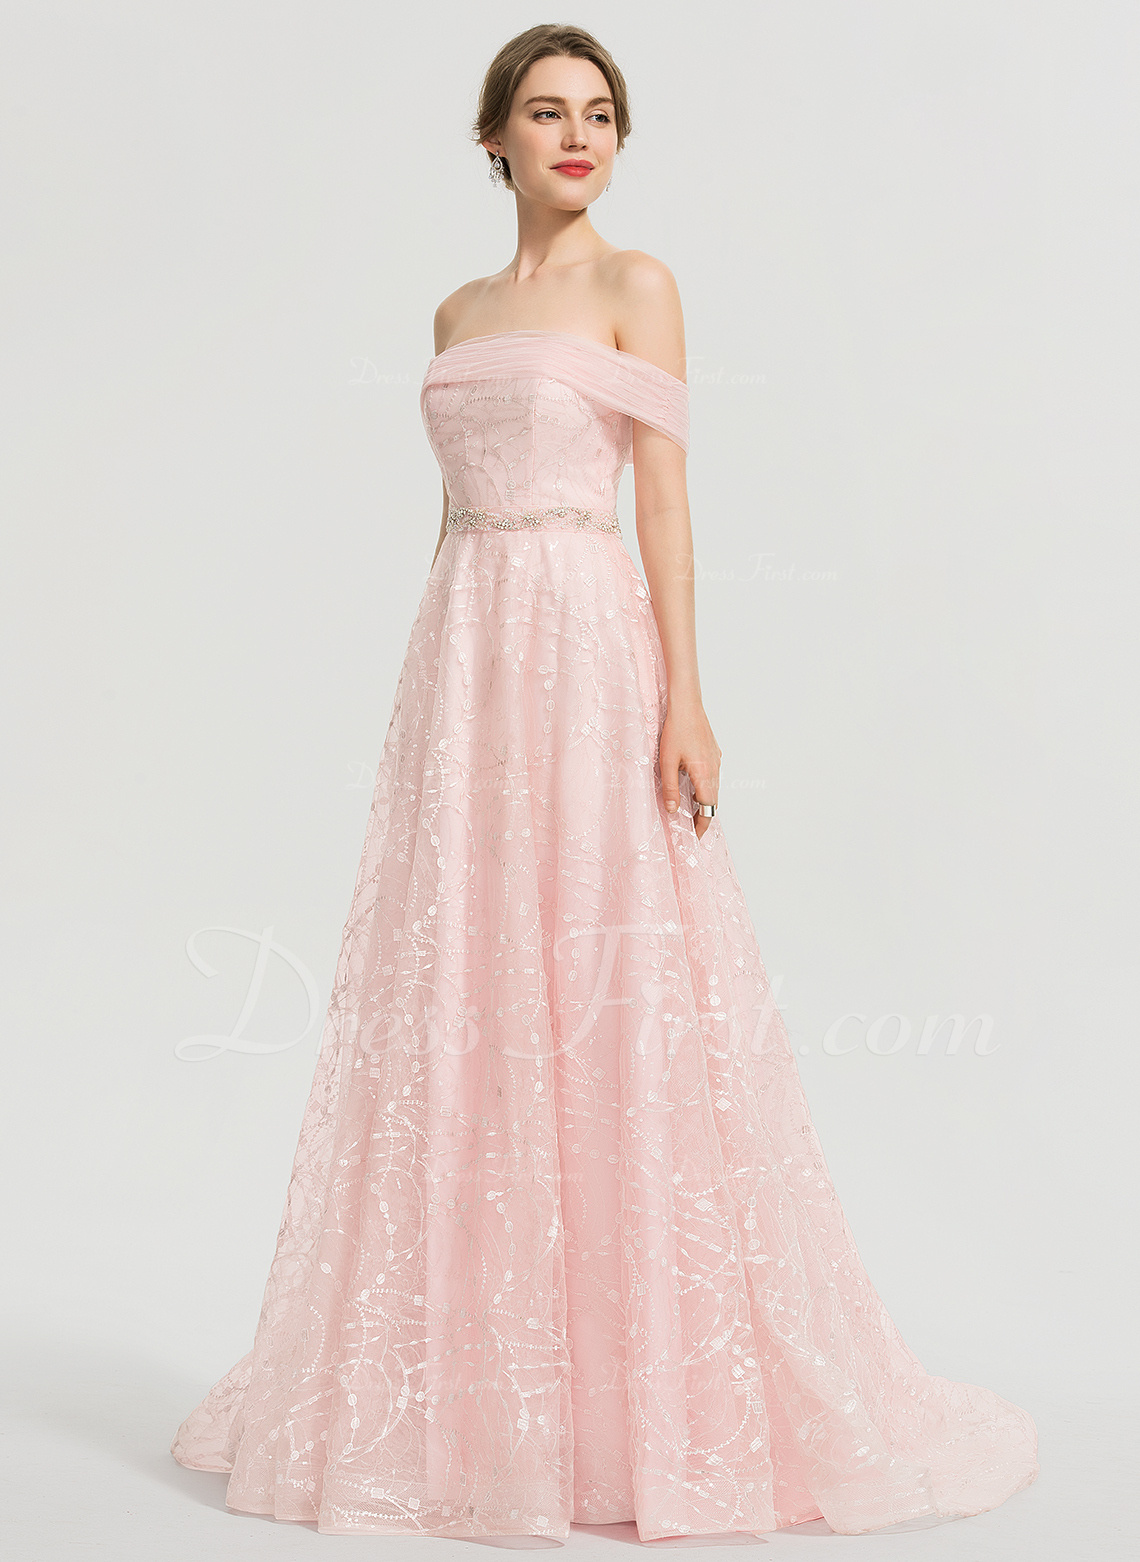 54d69f0688f8 A-Line Off-the-Shoulder Sweep Train Tulle Prom Dresses With Beading Sequins  #192333